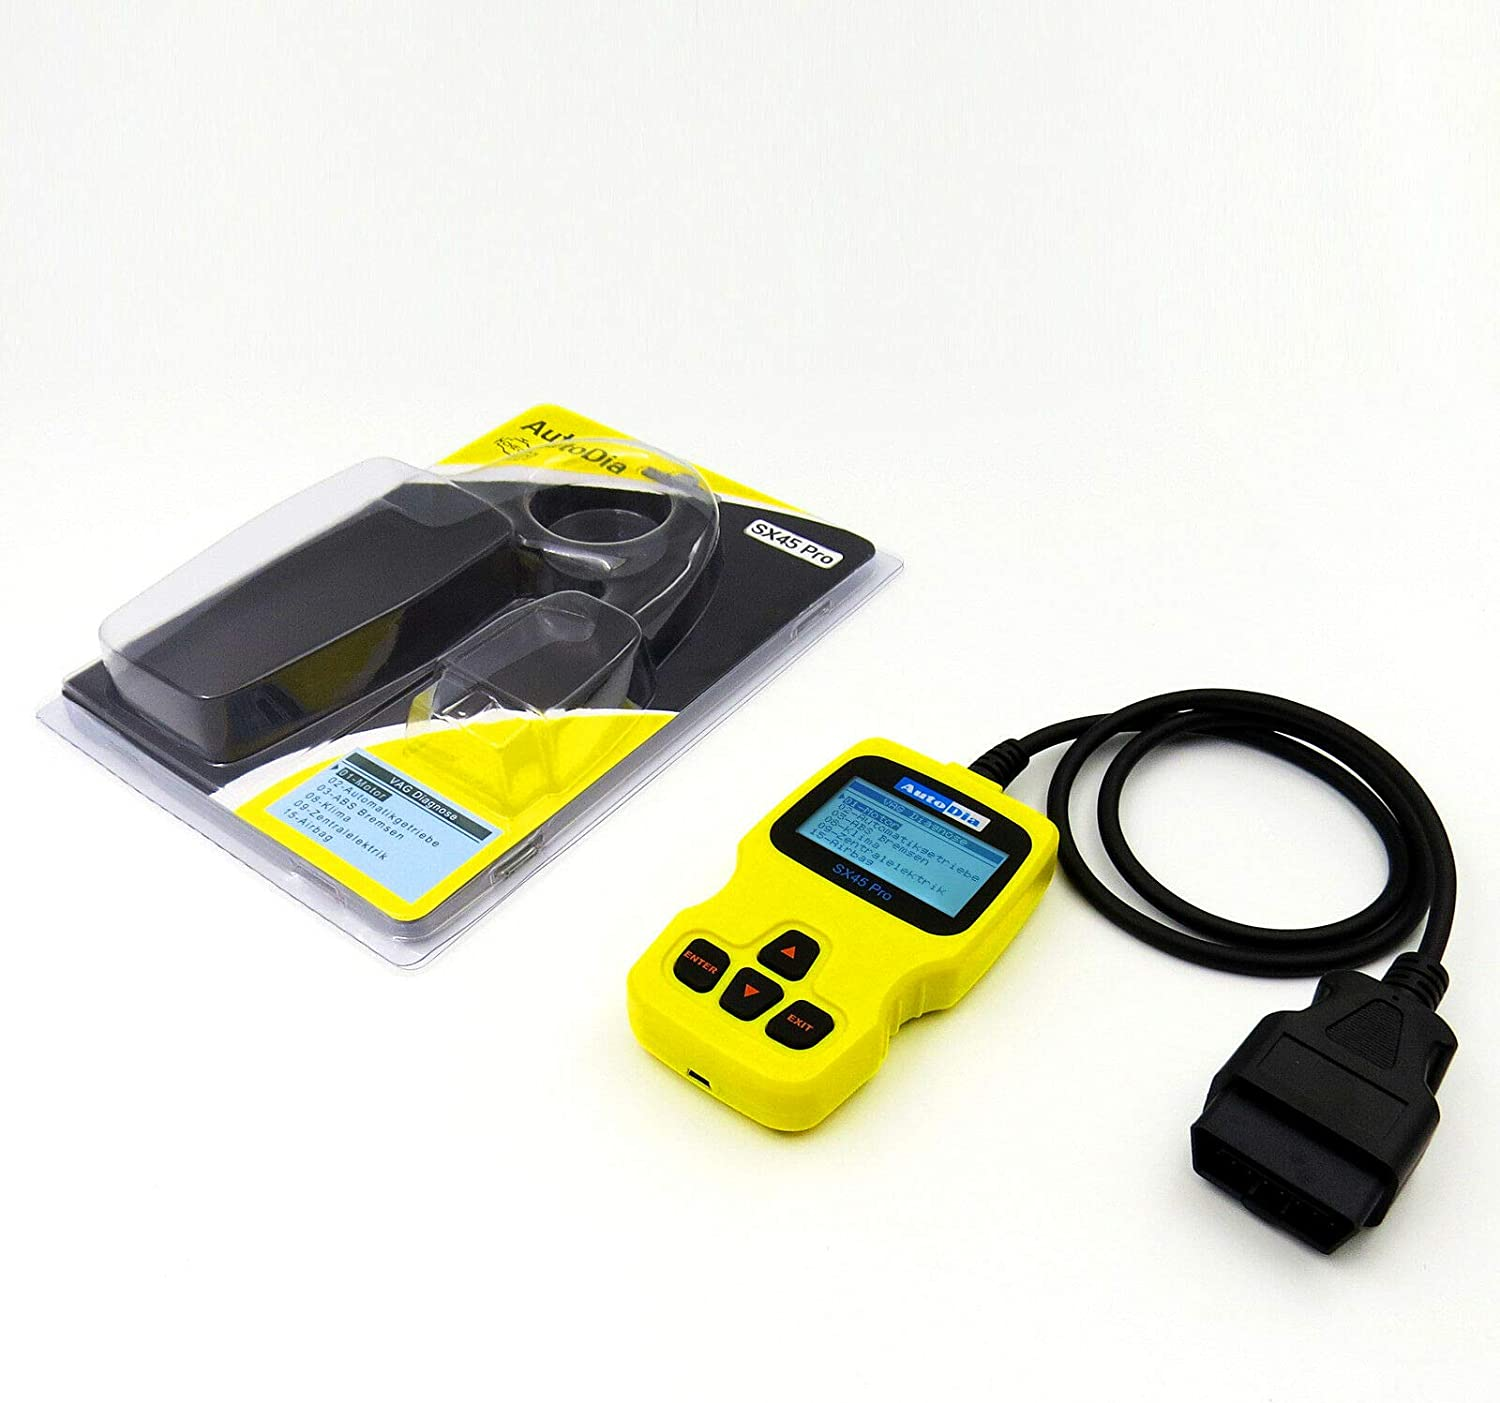 Autodia Sx45 Pro Can Bus Diagnose Handscanner Obd2 Auto